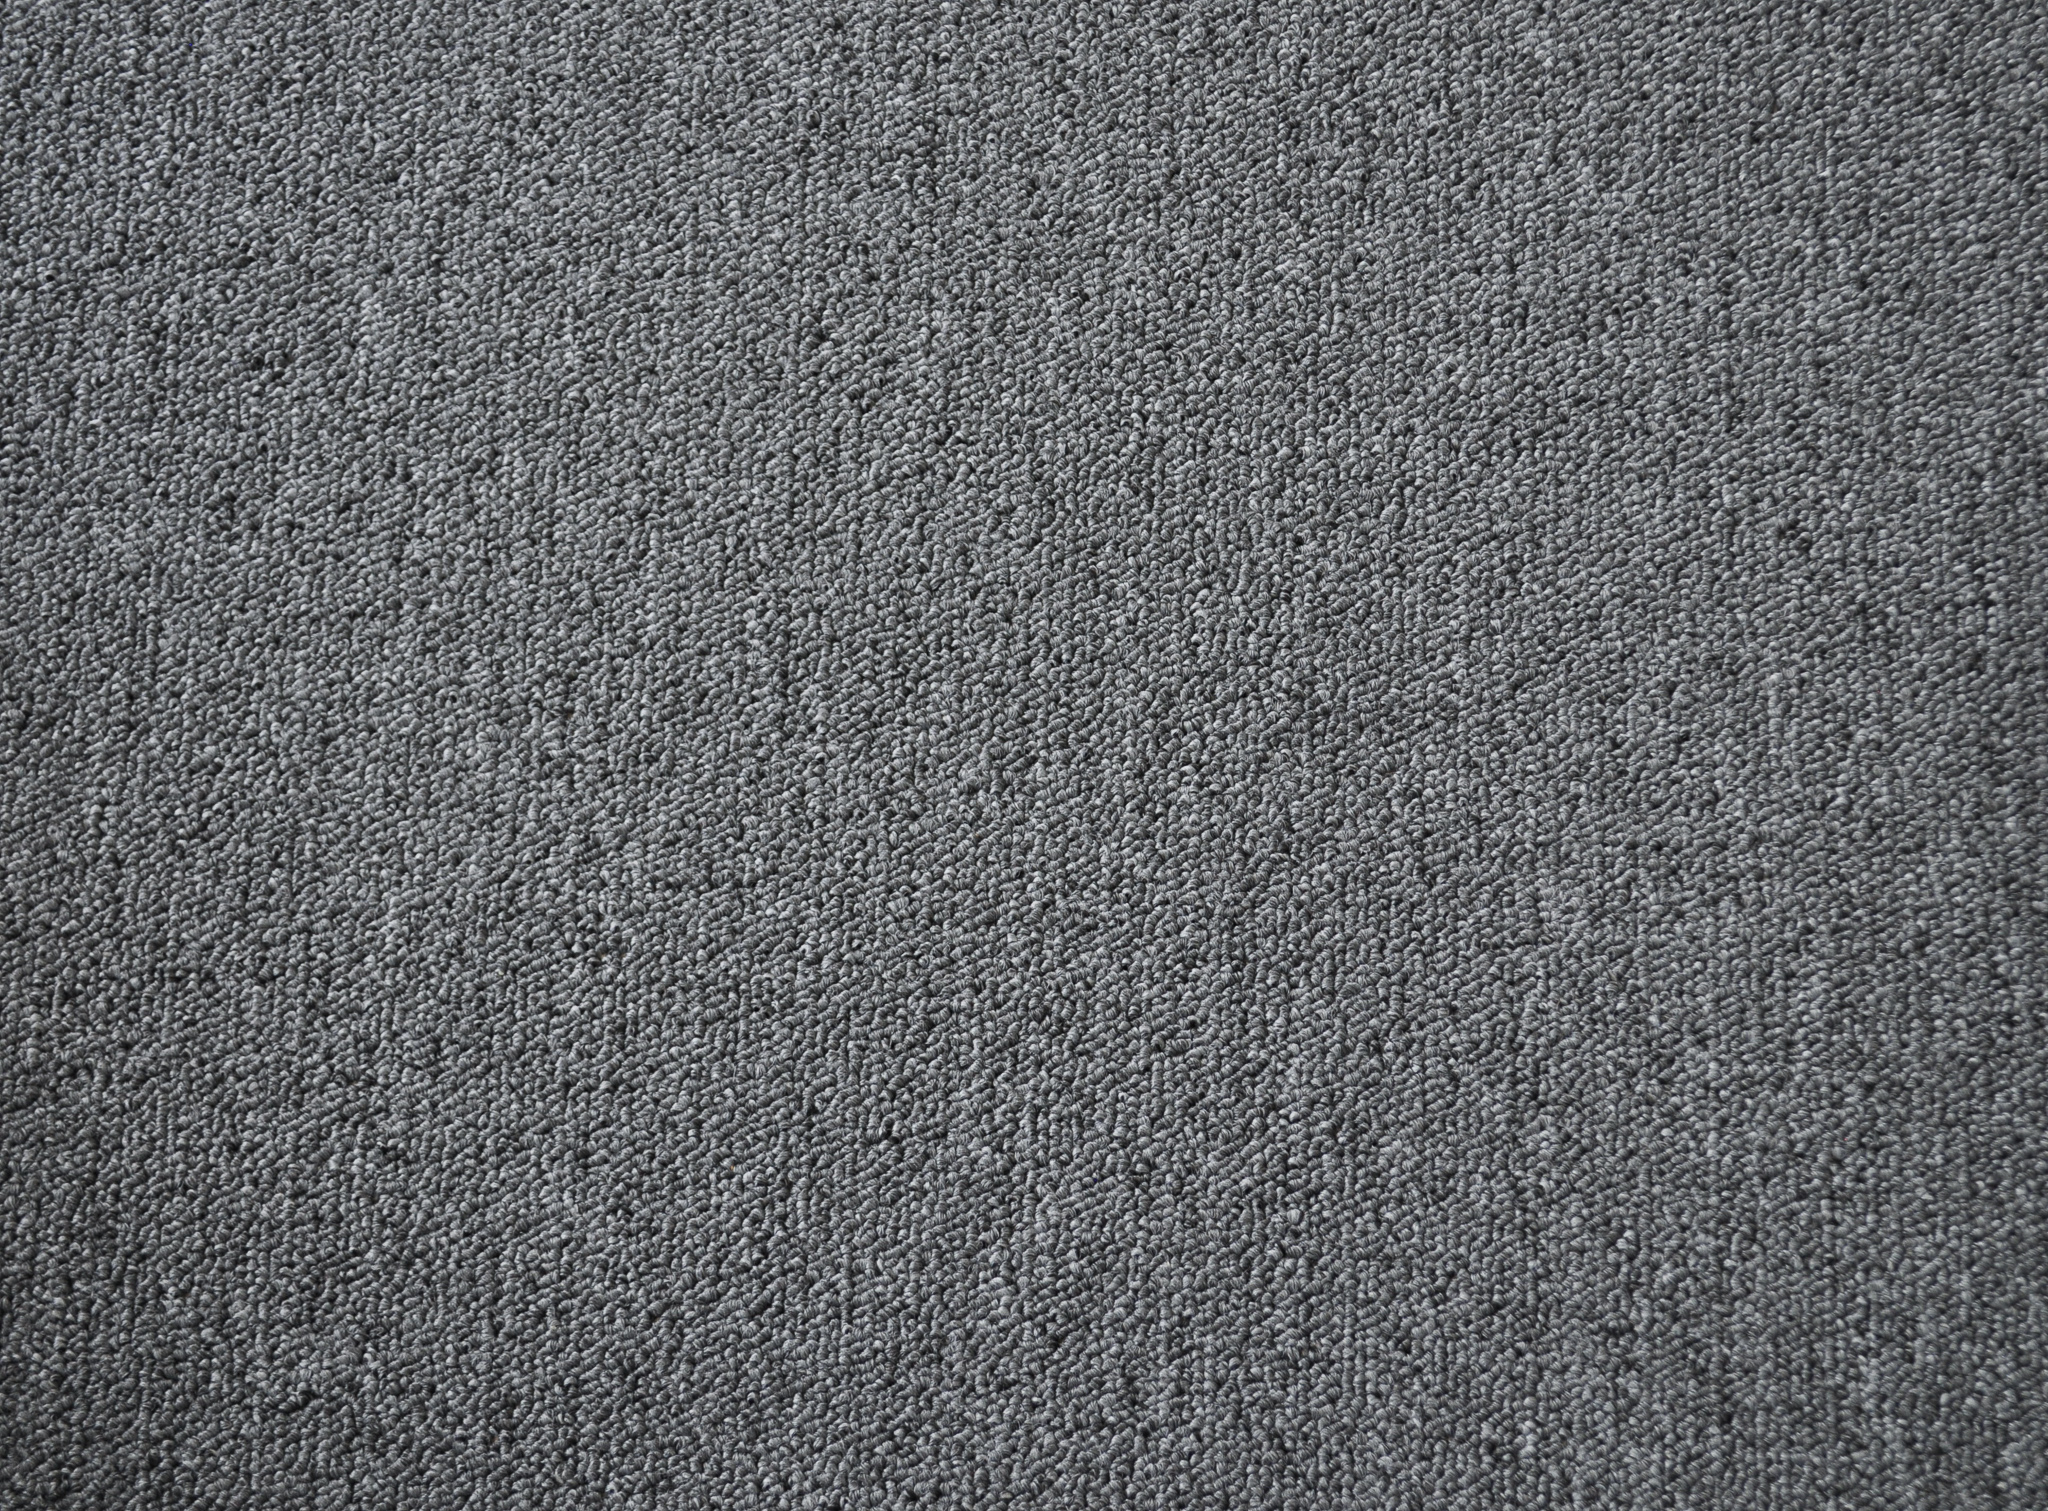 a sample of carpet of the steel blue color in the carpet range useful vallet.